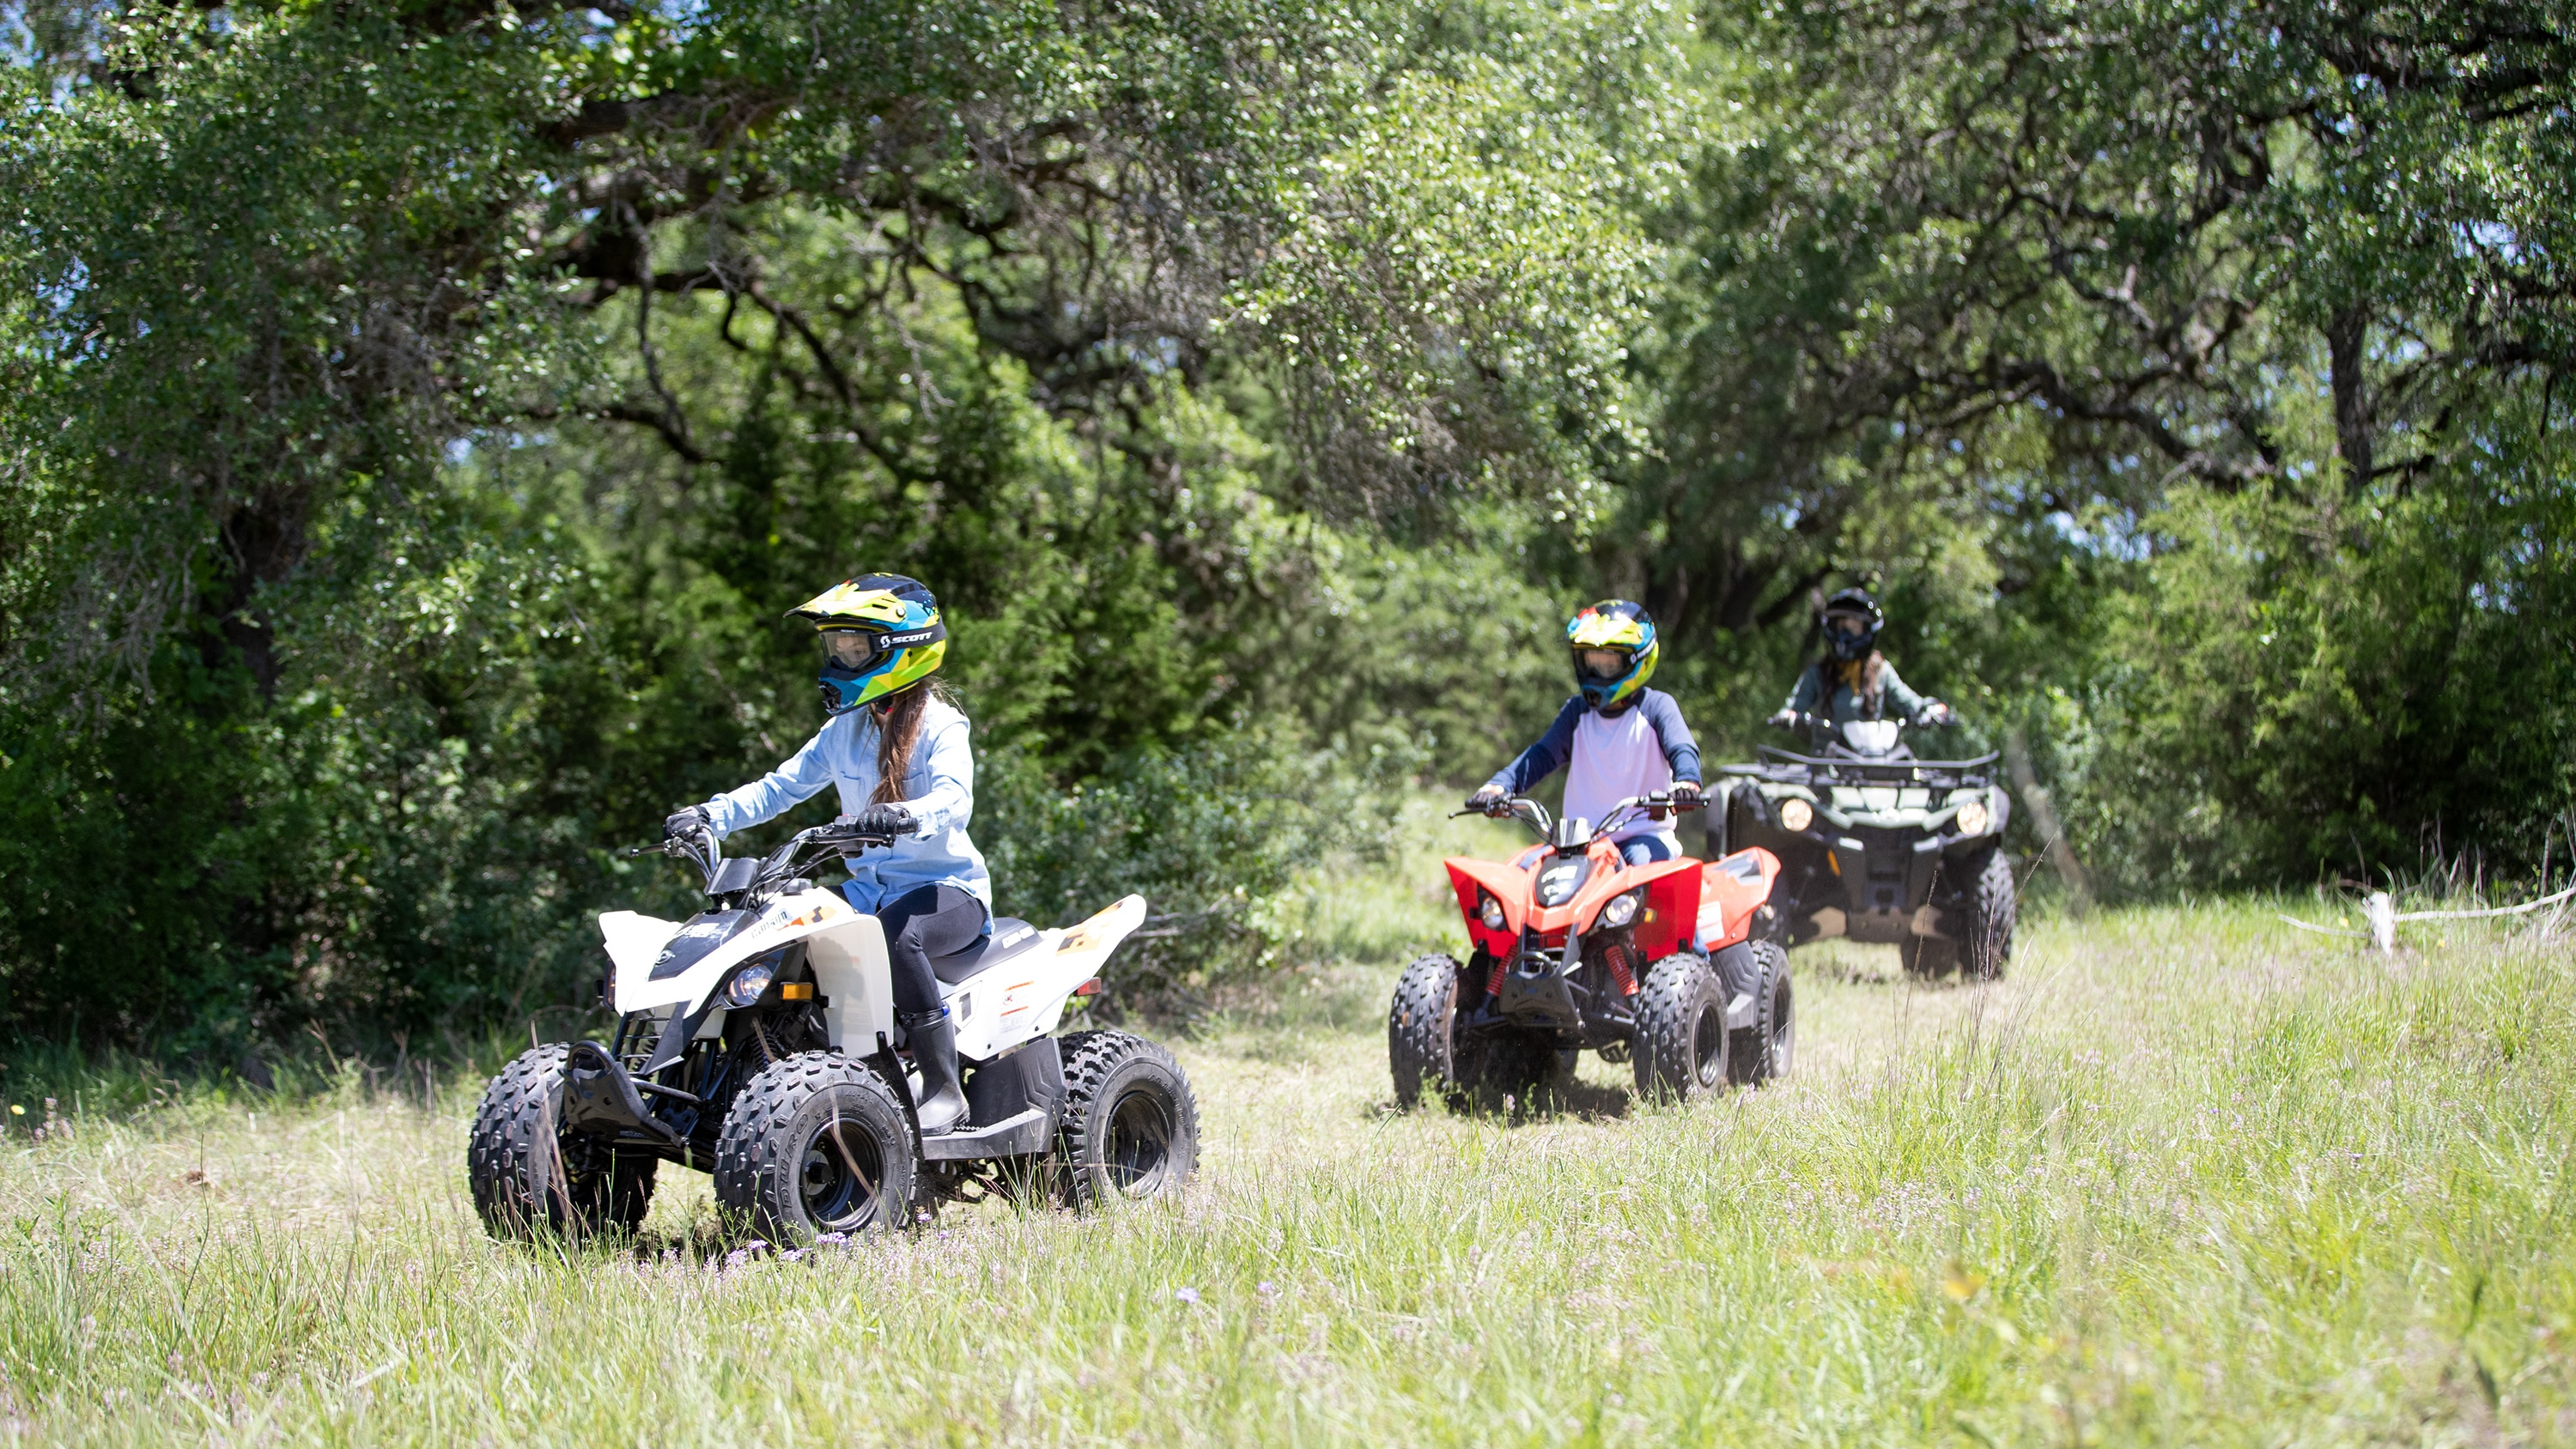 Two kids riding Can-Am DS ATVs and an adult in the background